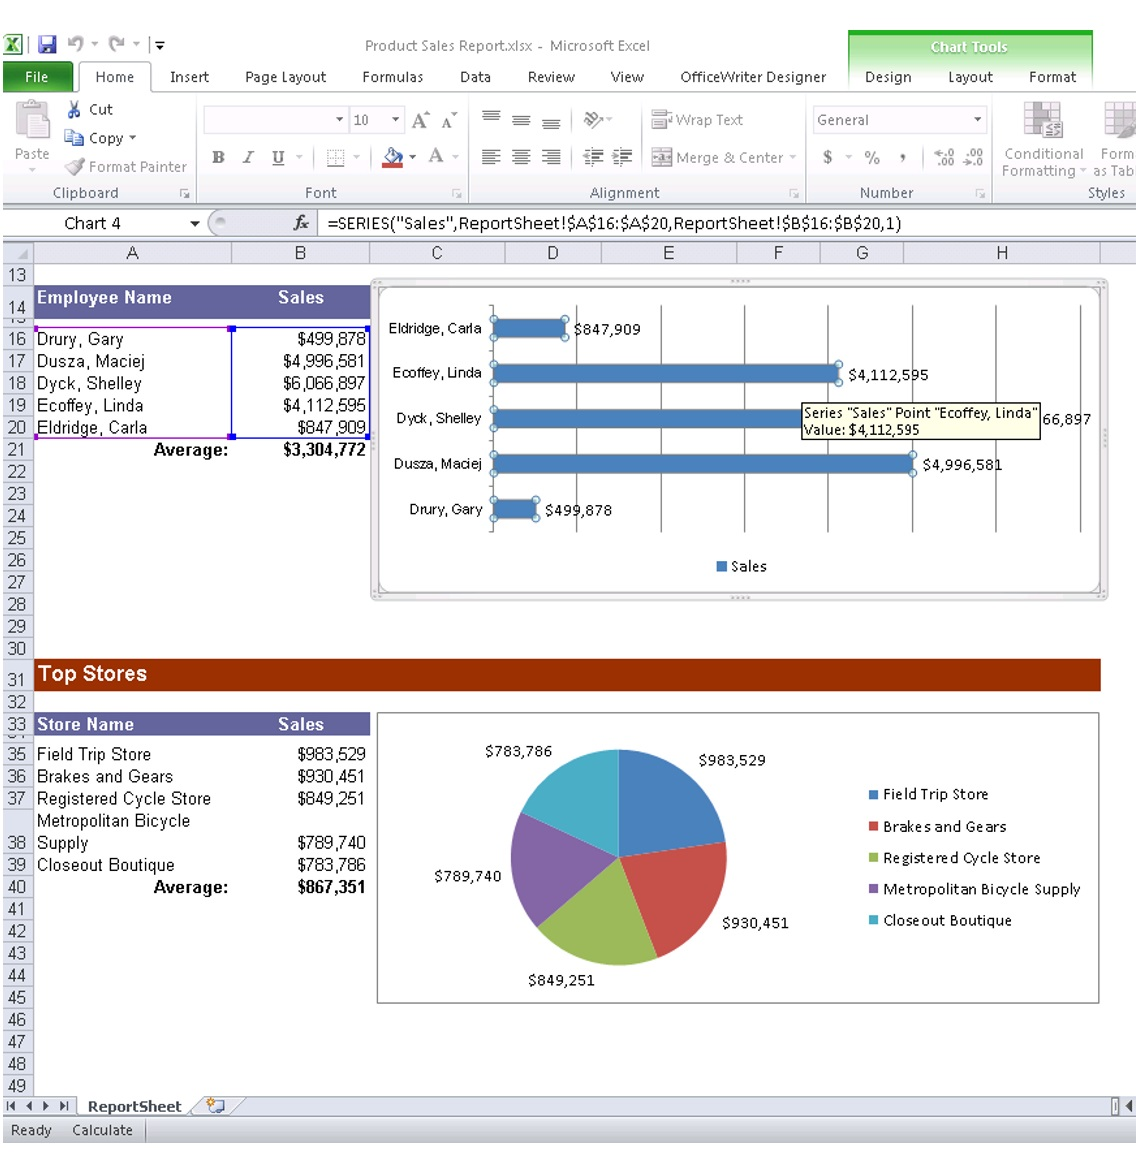 SQL Reporting - How to Add Excel and Word Reporting to Your Own